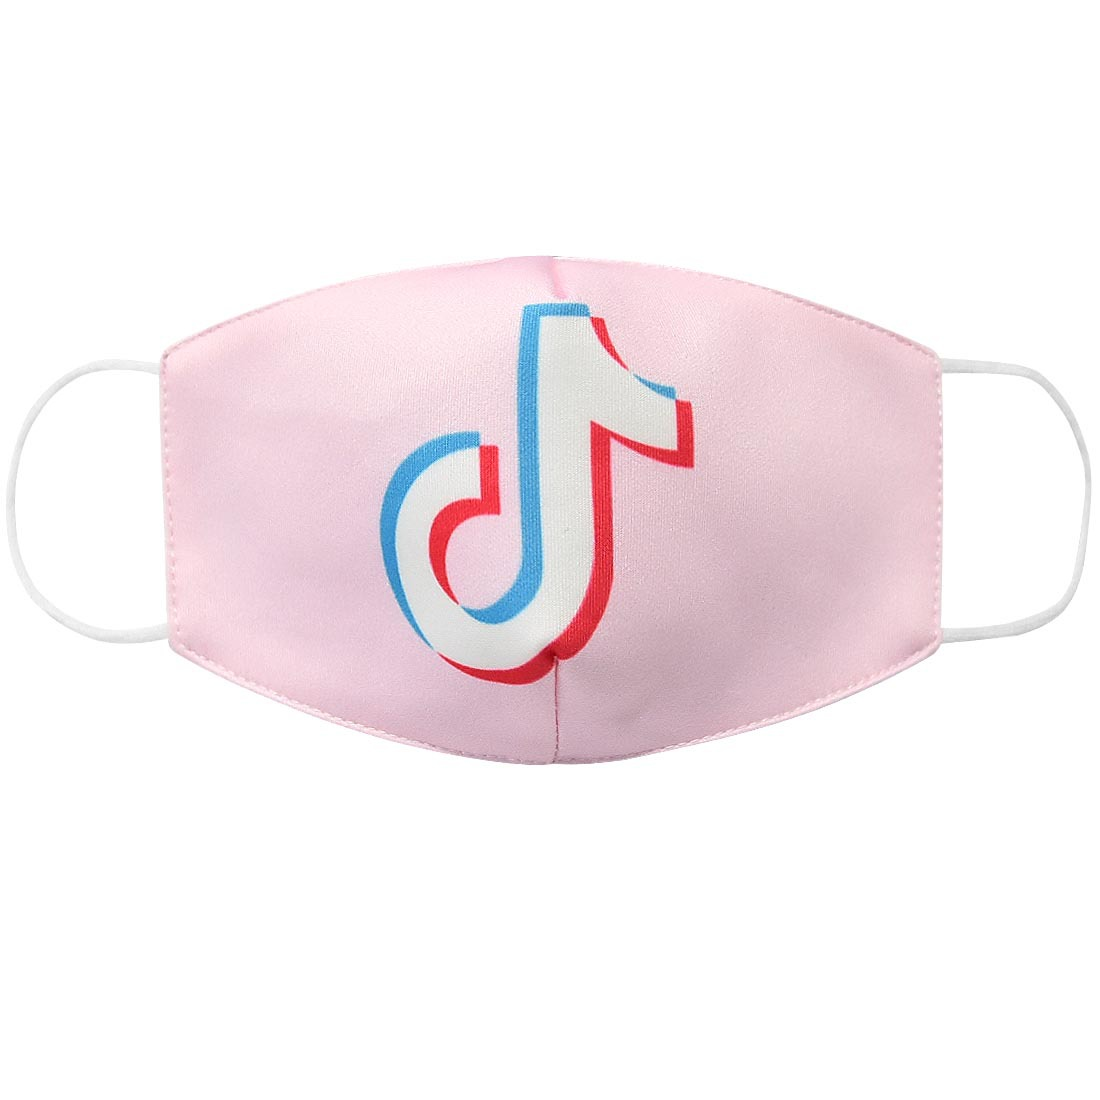 Cartoon Printed Children Printed Mask With Ice Silk Cotton Mask For Kids 2